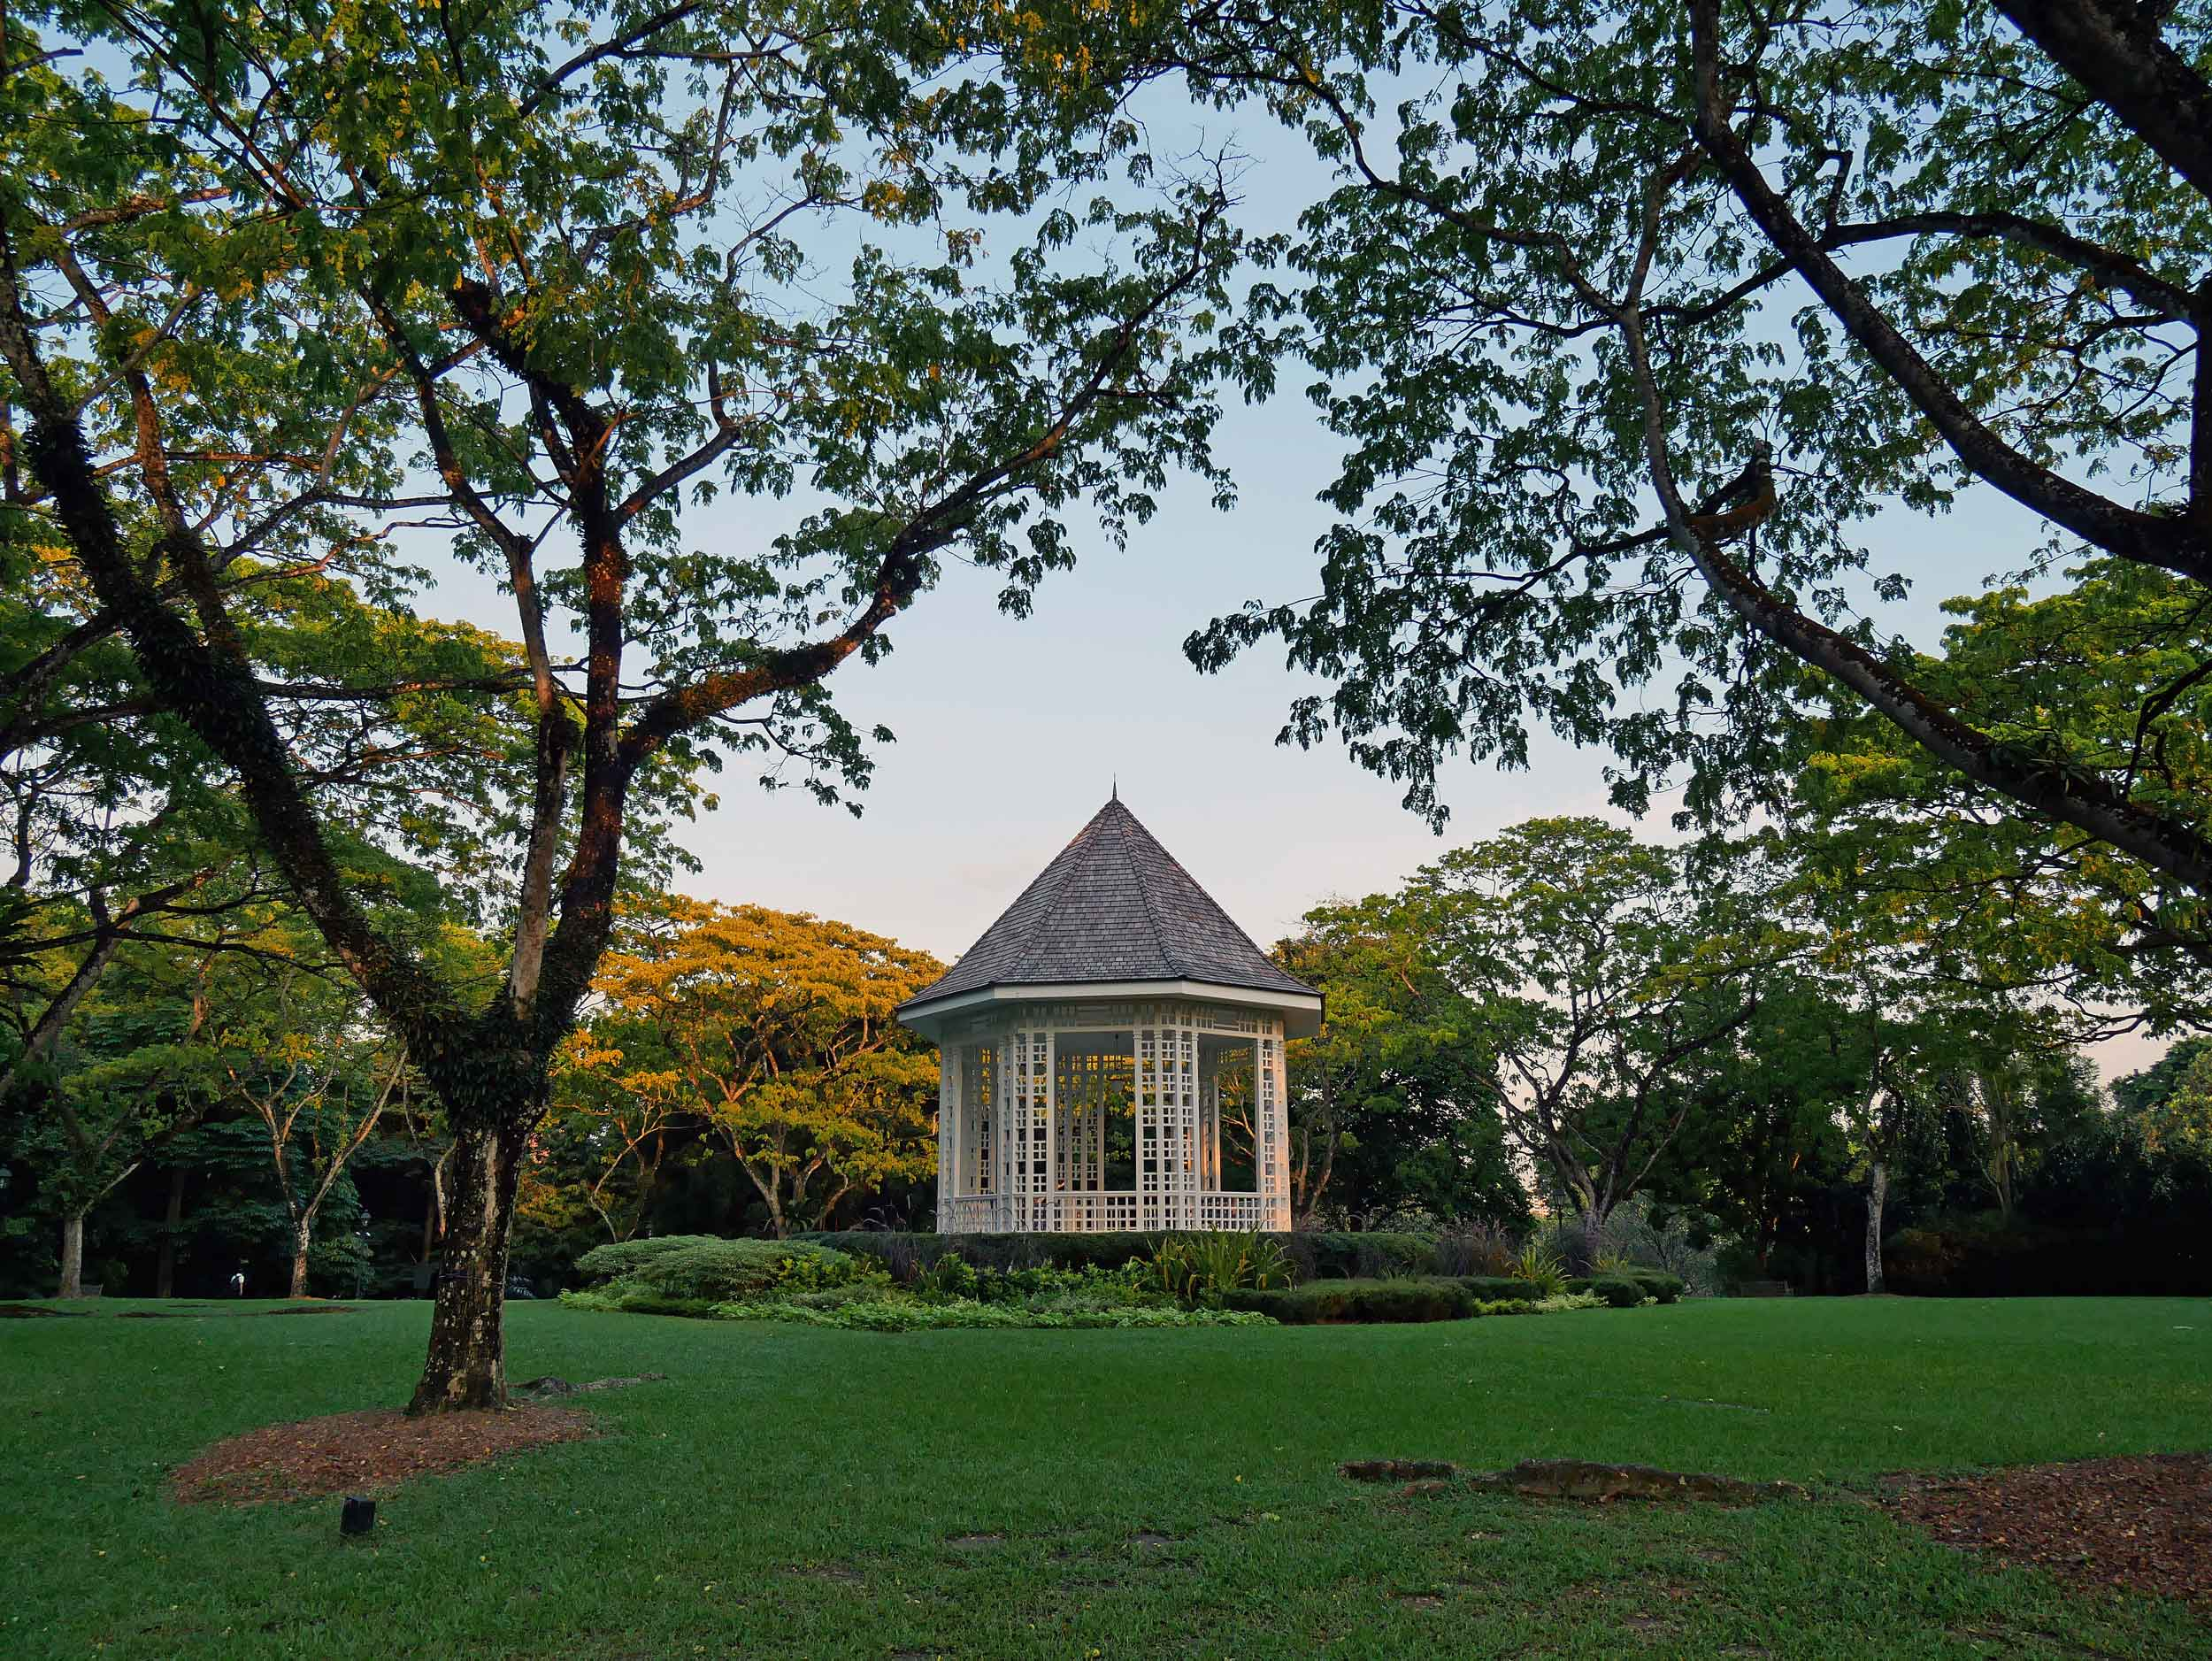 As the sun began to set on our first day, we checked out the beautiful Singapore Botanic Gardens.